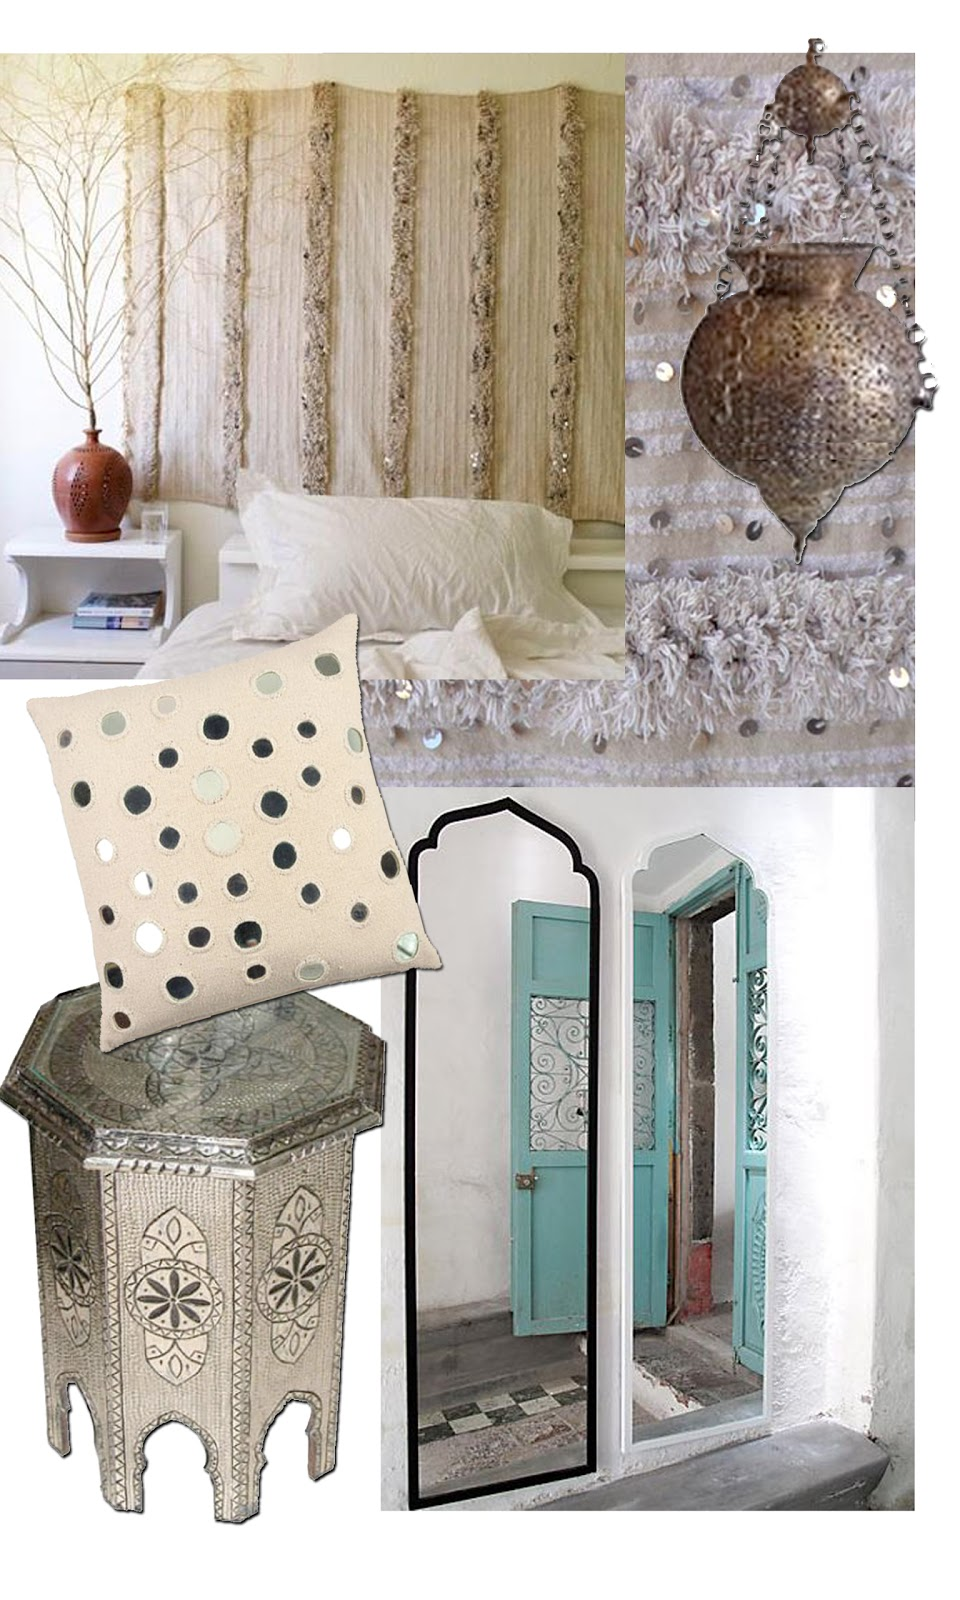 Designers take Moroccan shapes like the keyhole arch, the arabesque, and the Moorish arch and utilize it in fabric, furniture, lighting, and decorativepieces in interior design. These pieces have so much character, love them.